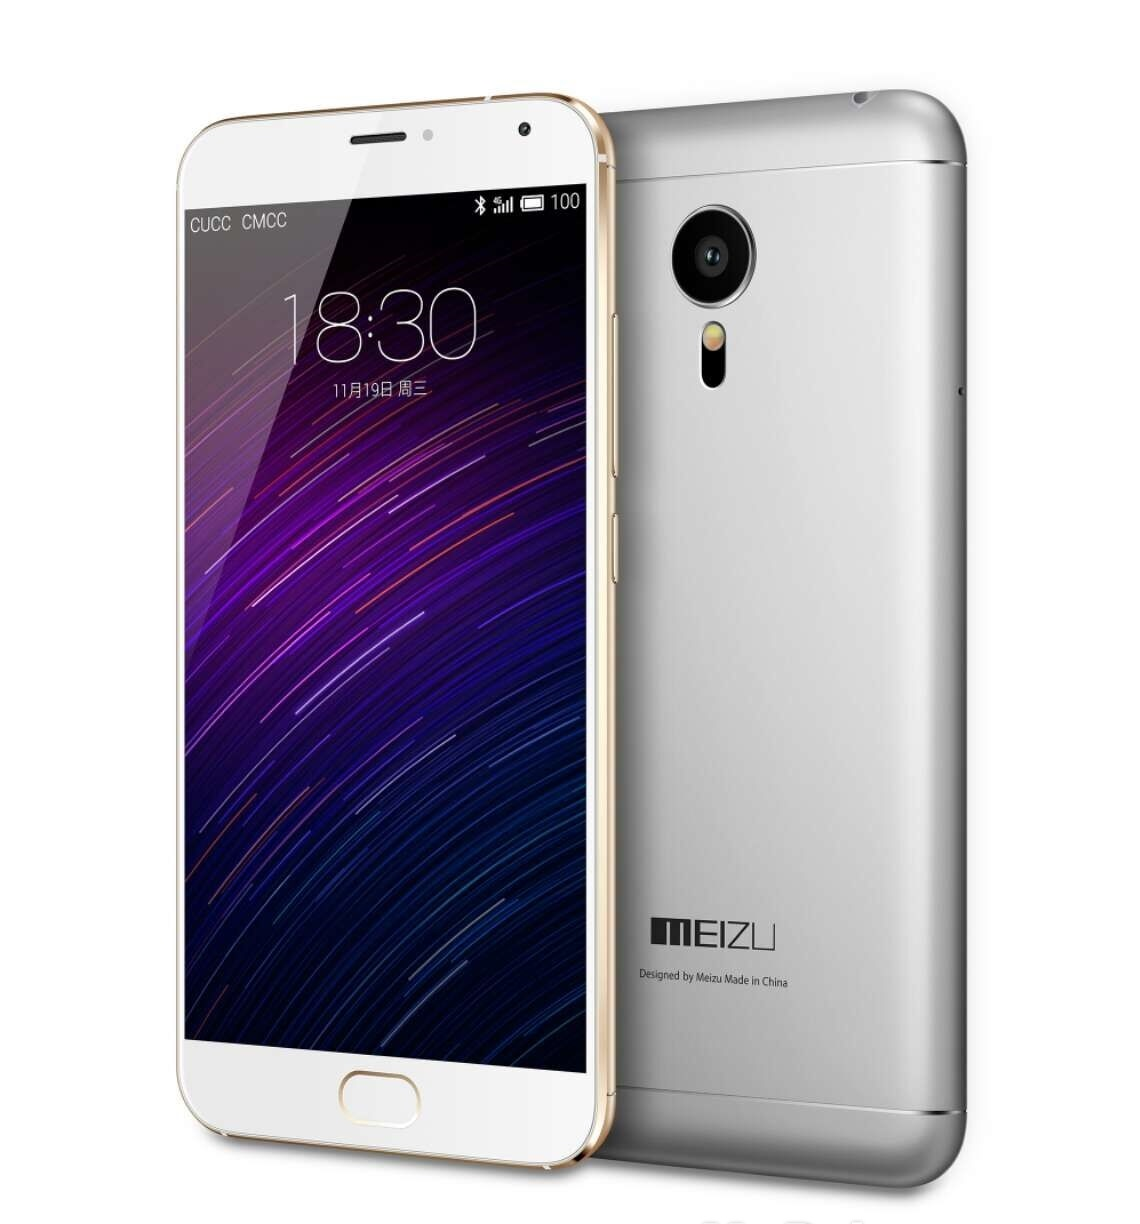 Meizu MX5 leaked images